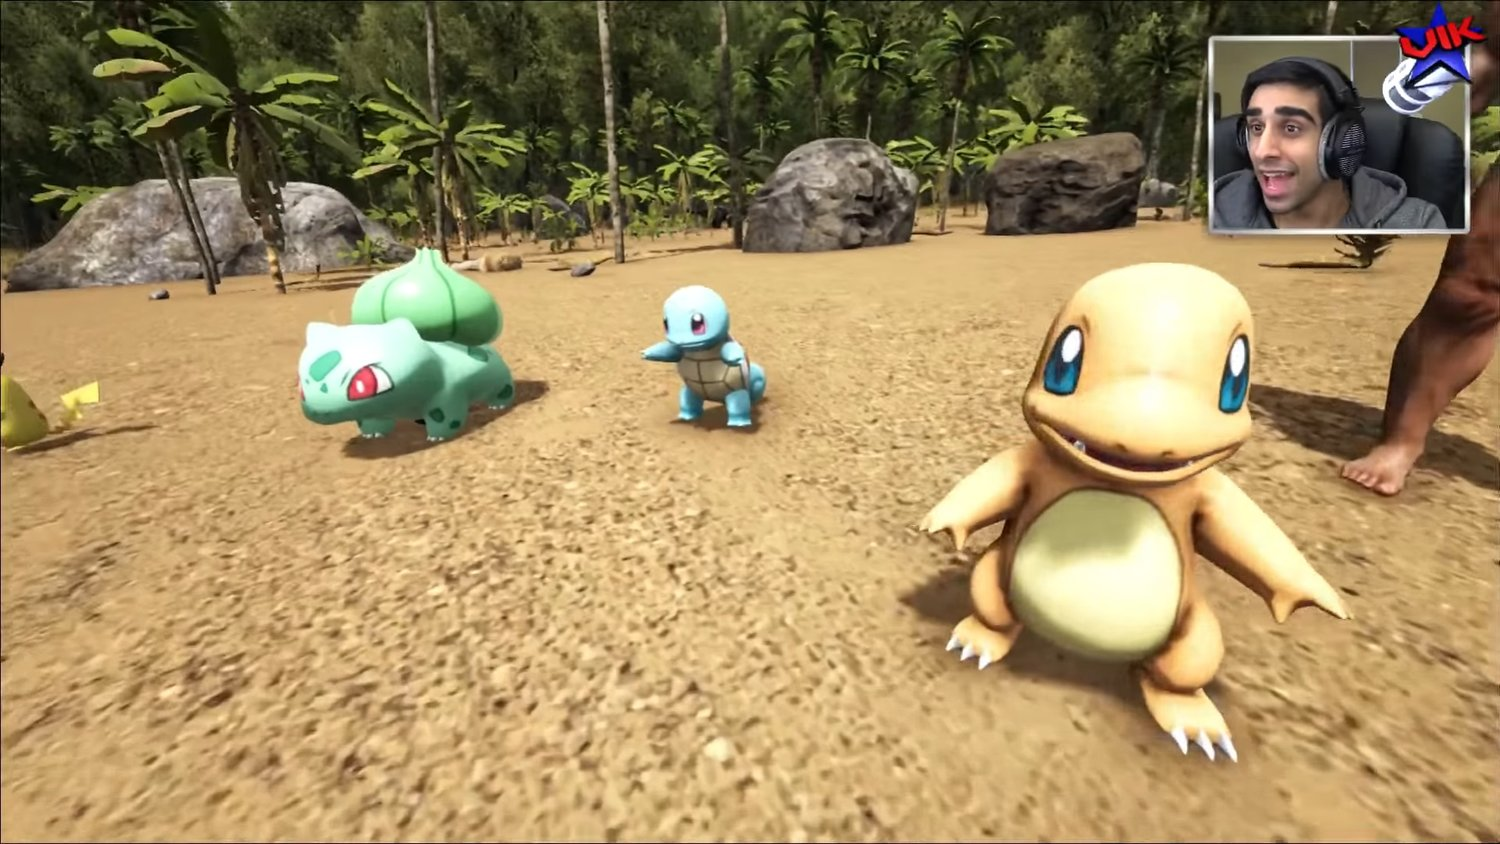 You Can Now Play With POKEMON Thanks To New Mod In ARK: SURVIVAL